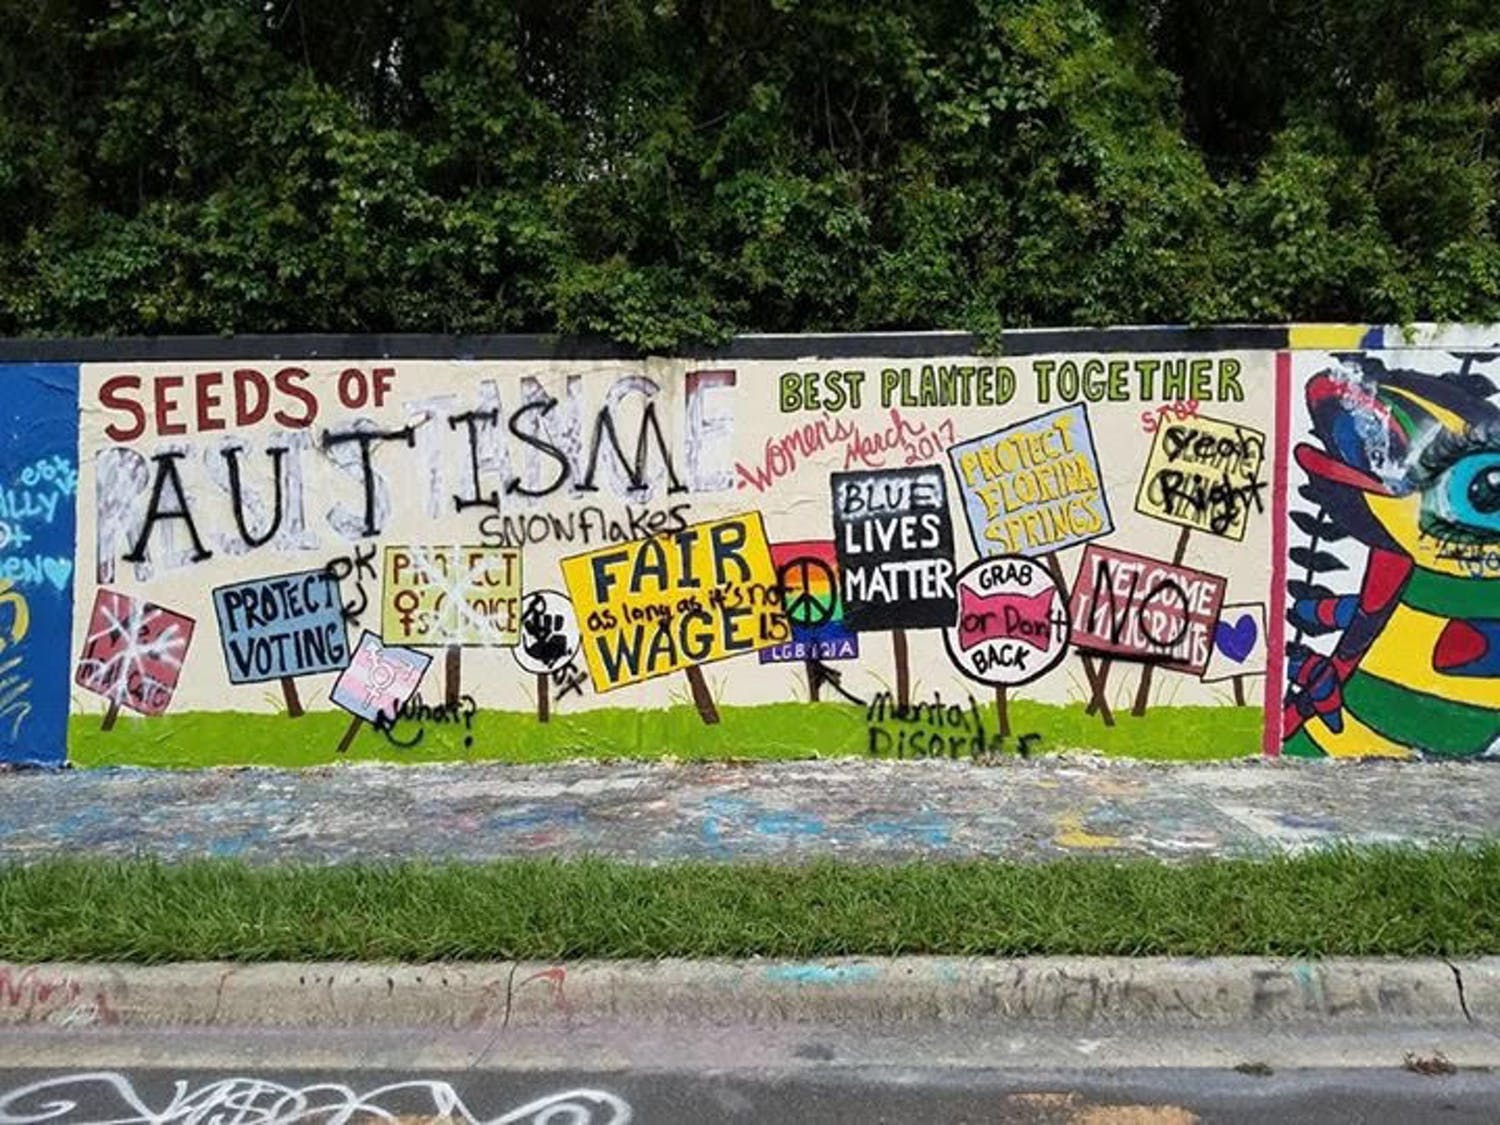 Pamela Smith, a volunteer with Women's March Gainesville, said that on Sunday afternoon, the group received an inquiry explaining that someone driving down 34th street had seen a single man defacing the mural.